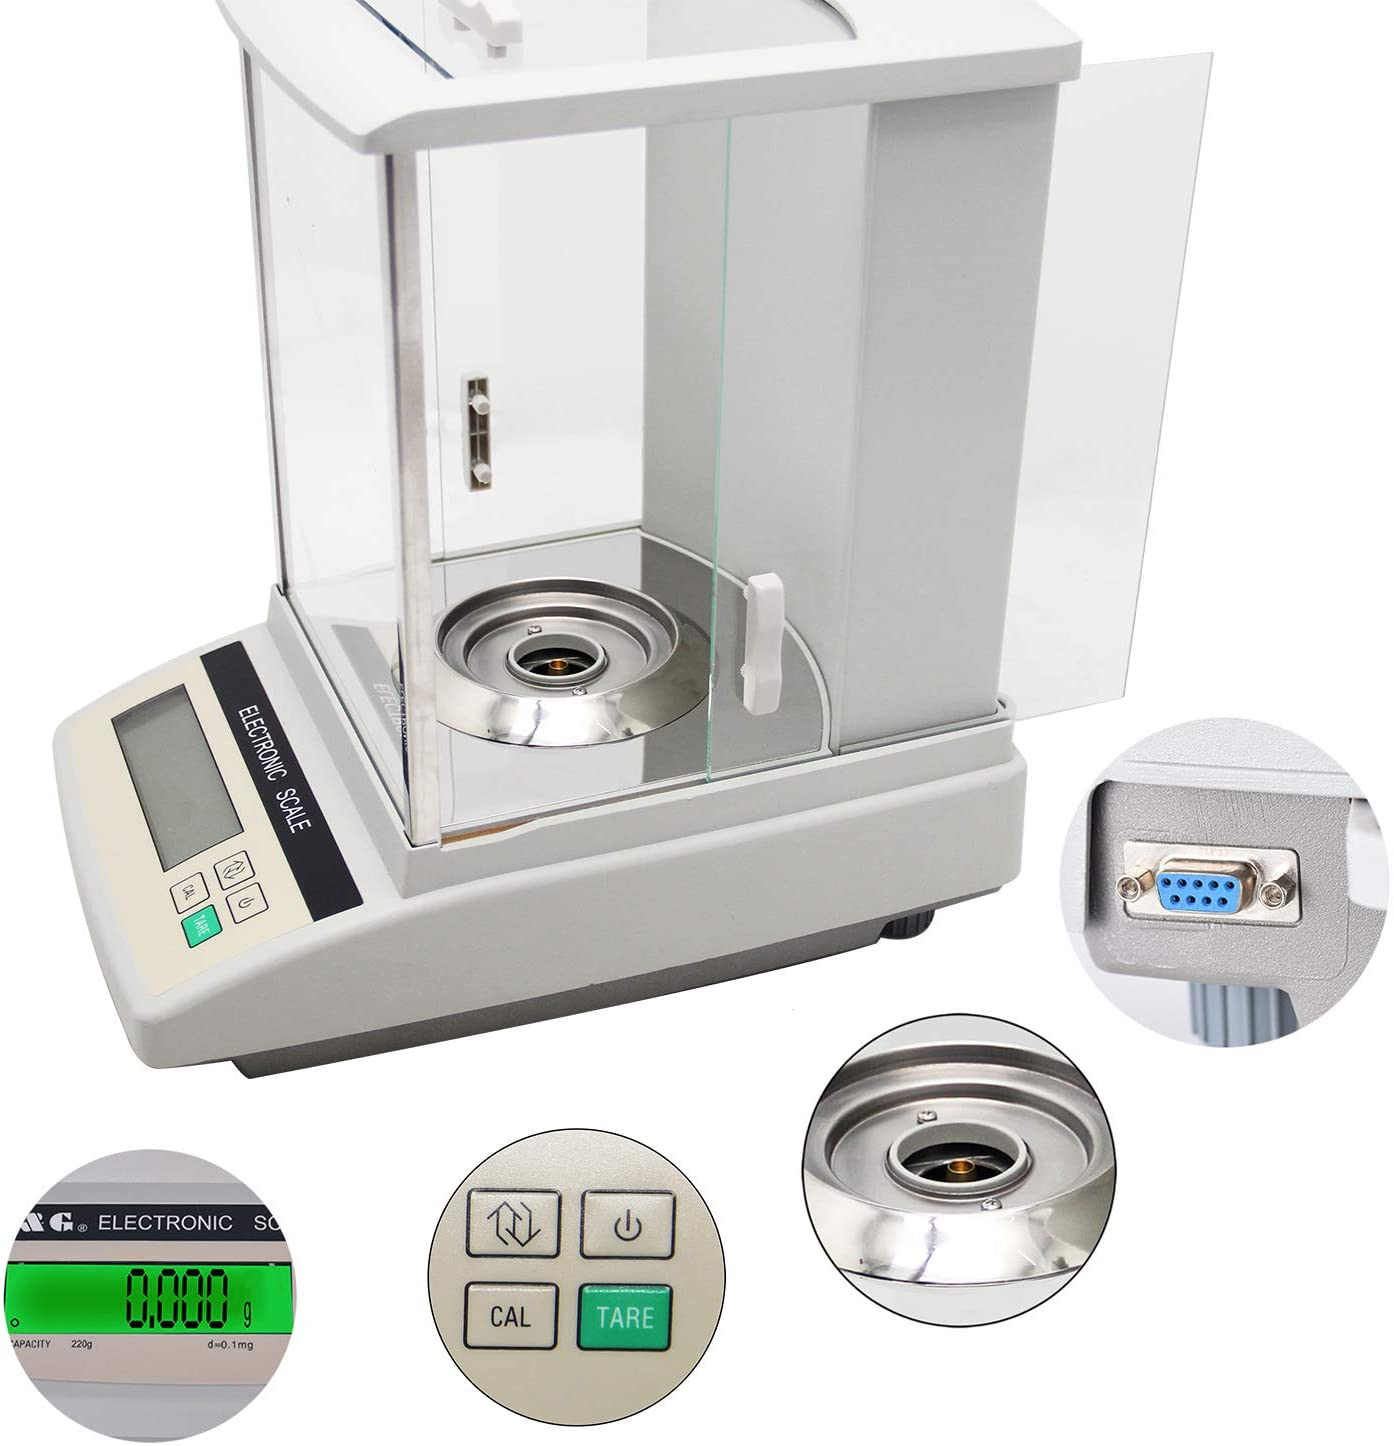 Hanchen Electric Analytical Balance 520g/1mg 0.001g Digital Balance Scale For Laboratory Pharmacy Jewelry Store Chemical Plant 110v